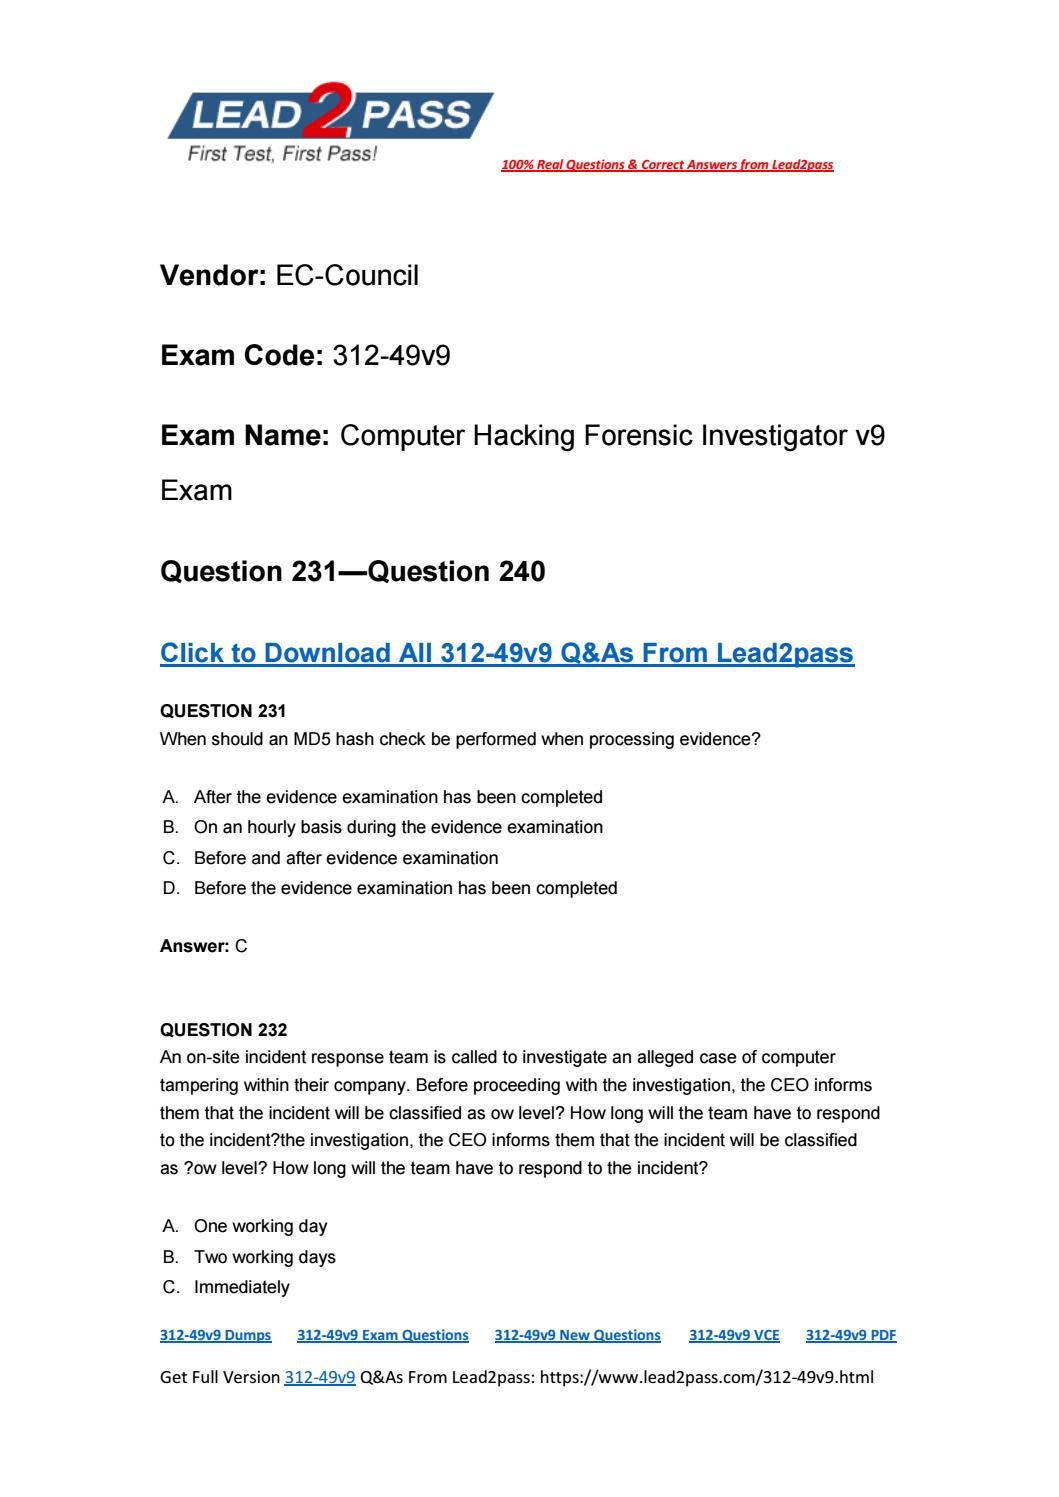 312-49v9 Exam Question From Lead2pass (231-240) by magichou1